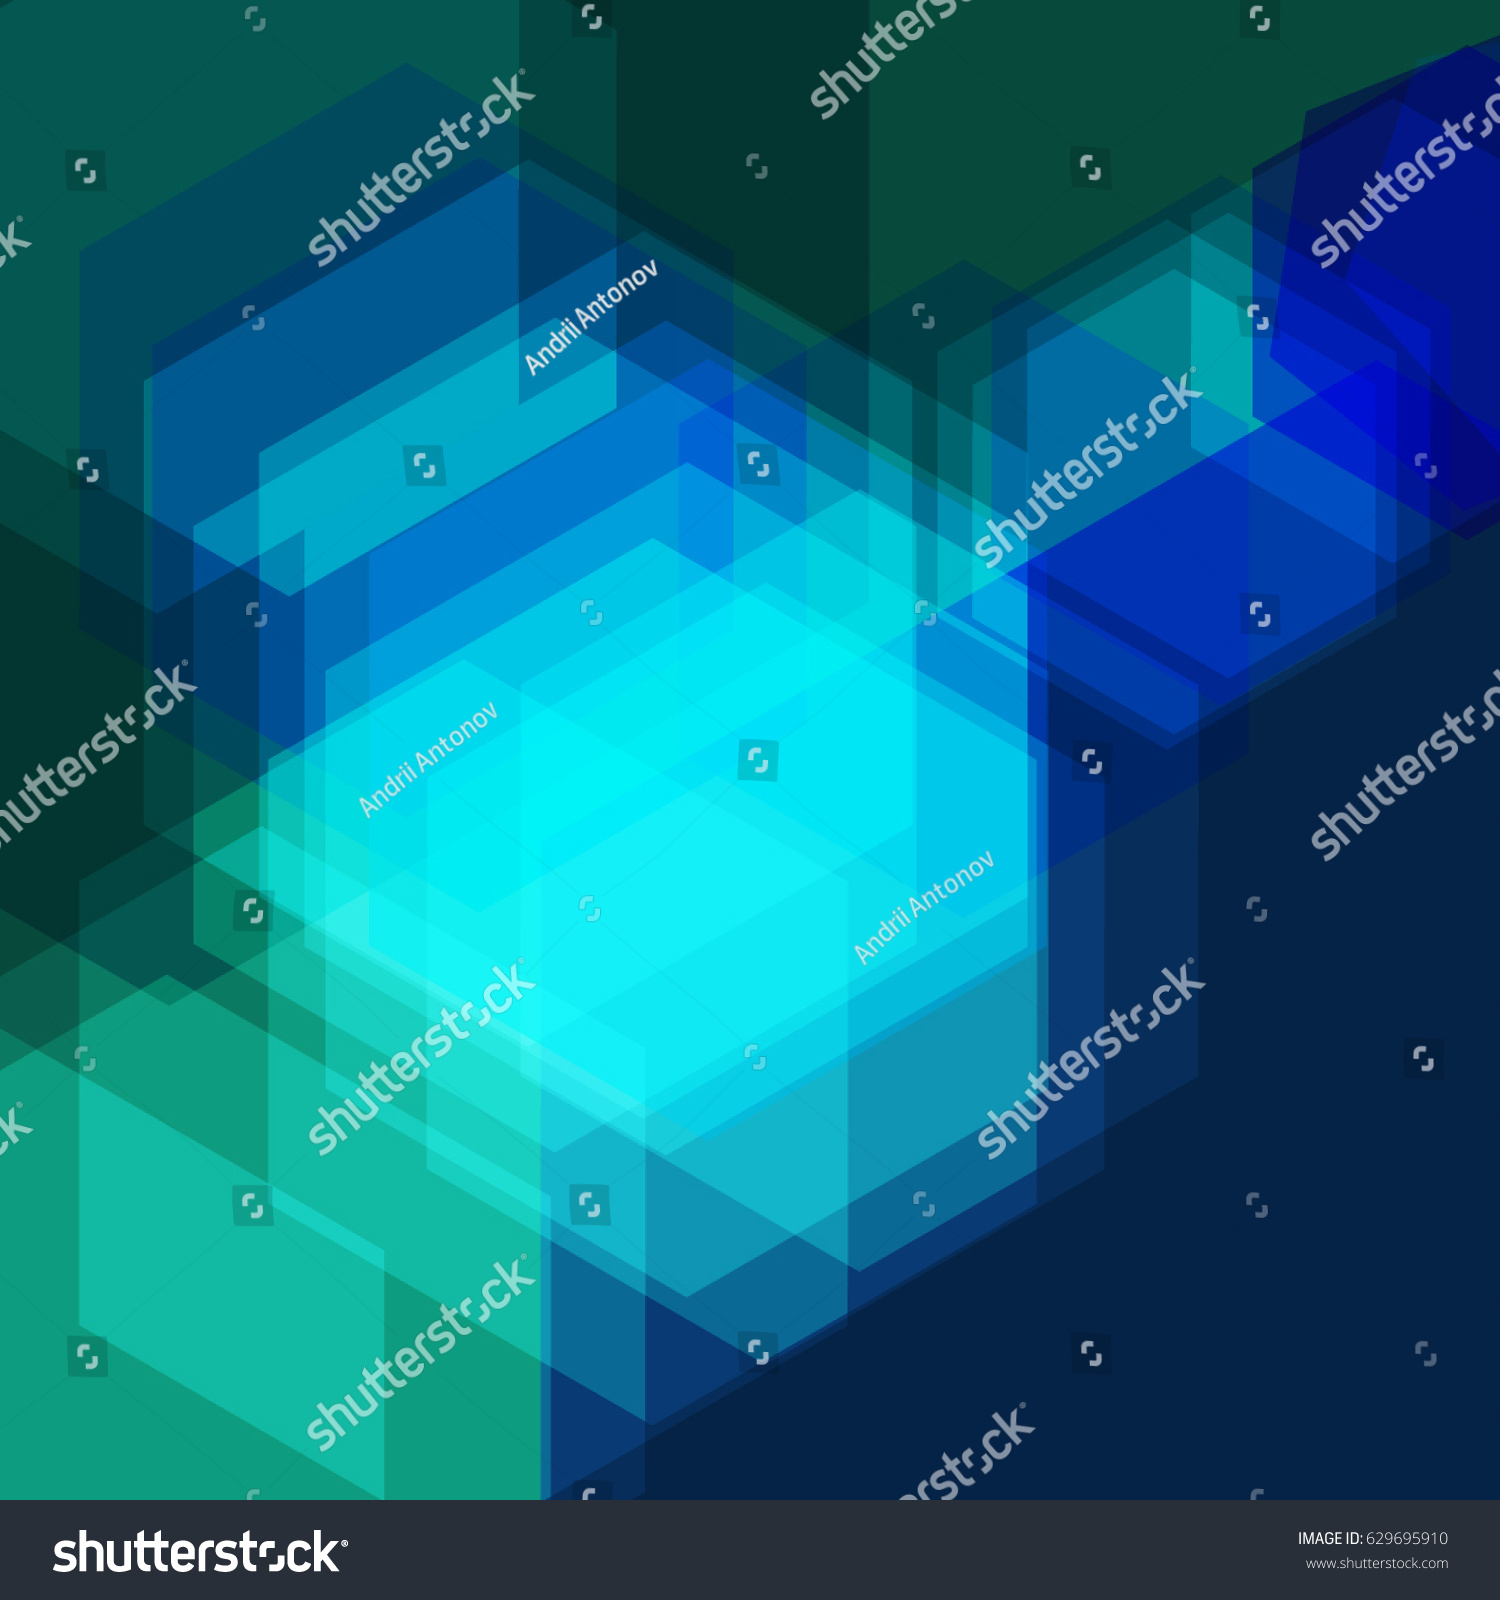 Neon Blinding Light Abstract Background Modern Dazzling Wallpaper High Quality